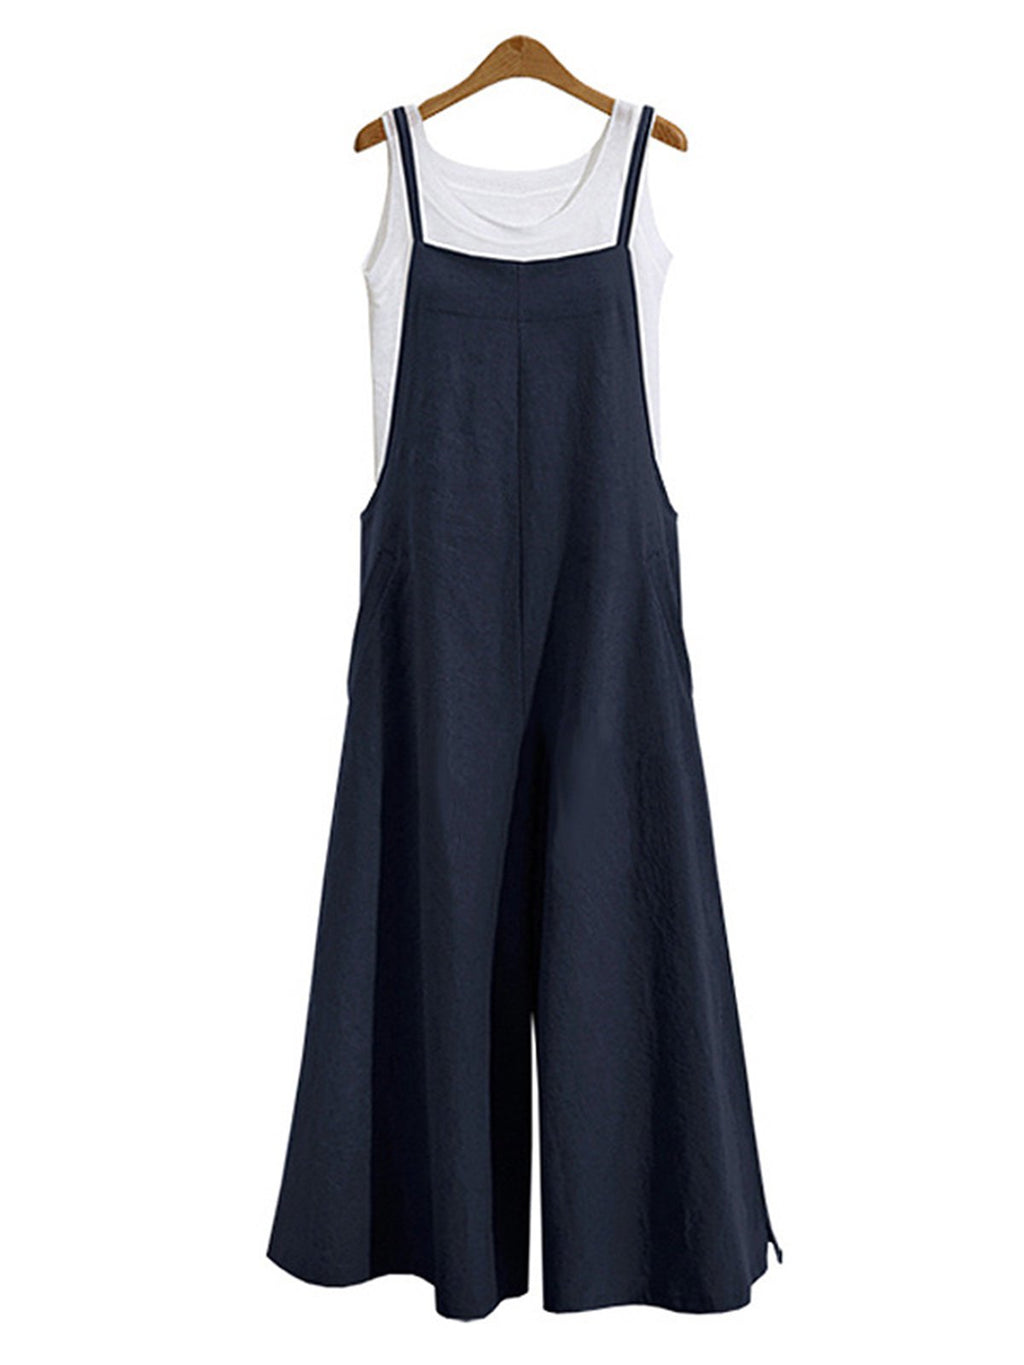 Women Casual Solid Spaghetti Wide Leg Pockets Jumpsuits Loose Bib Overalls Jumpsuits